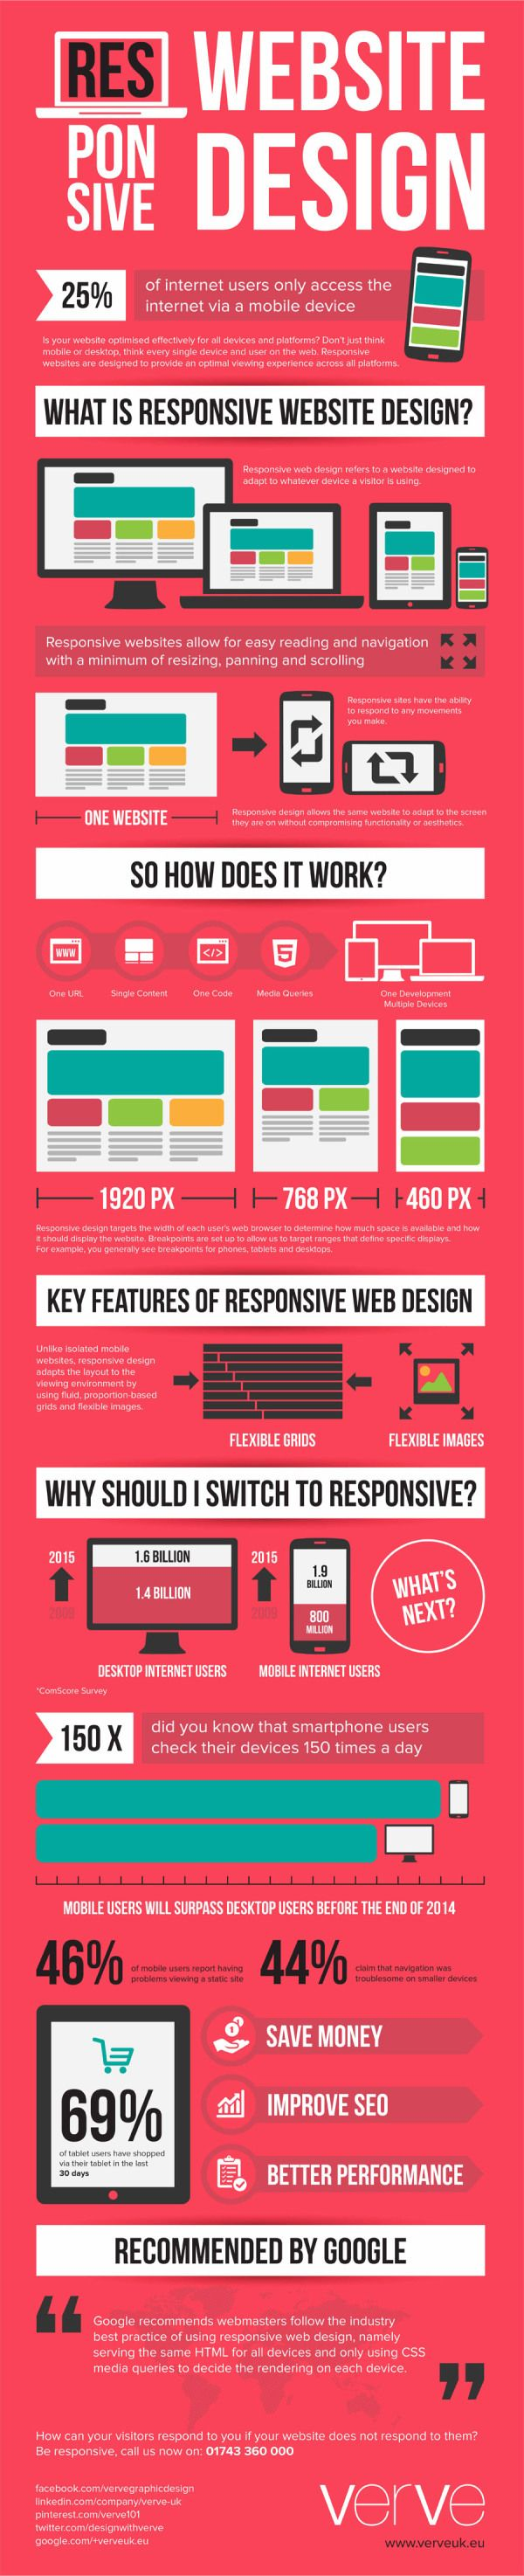 How Responsive WebSite Design Works [Infographic]